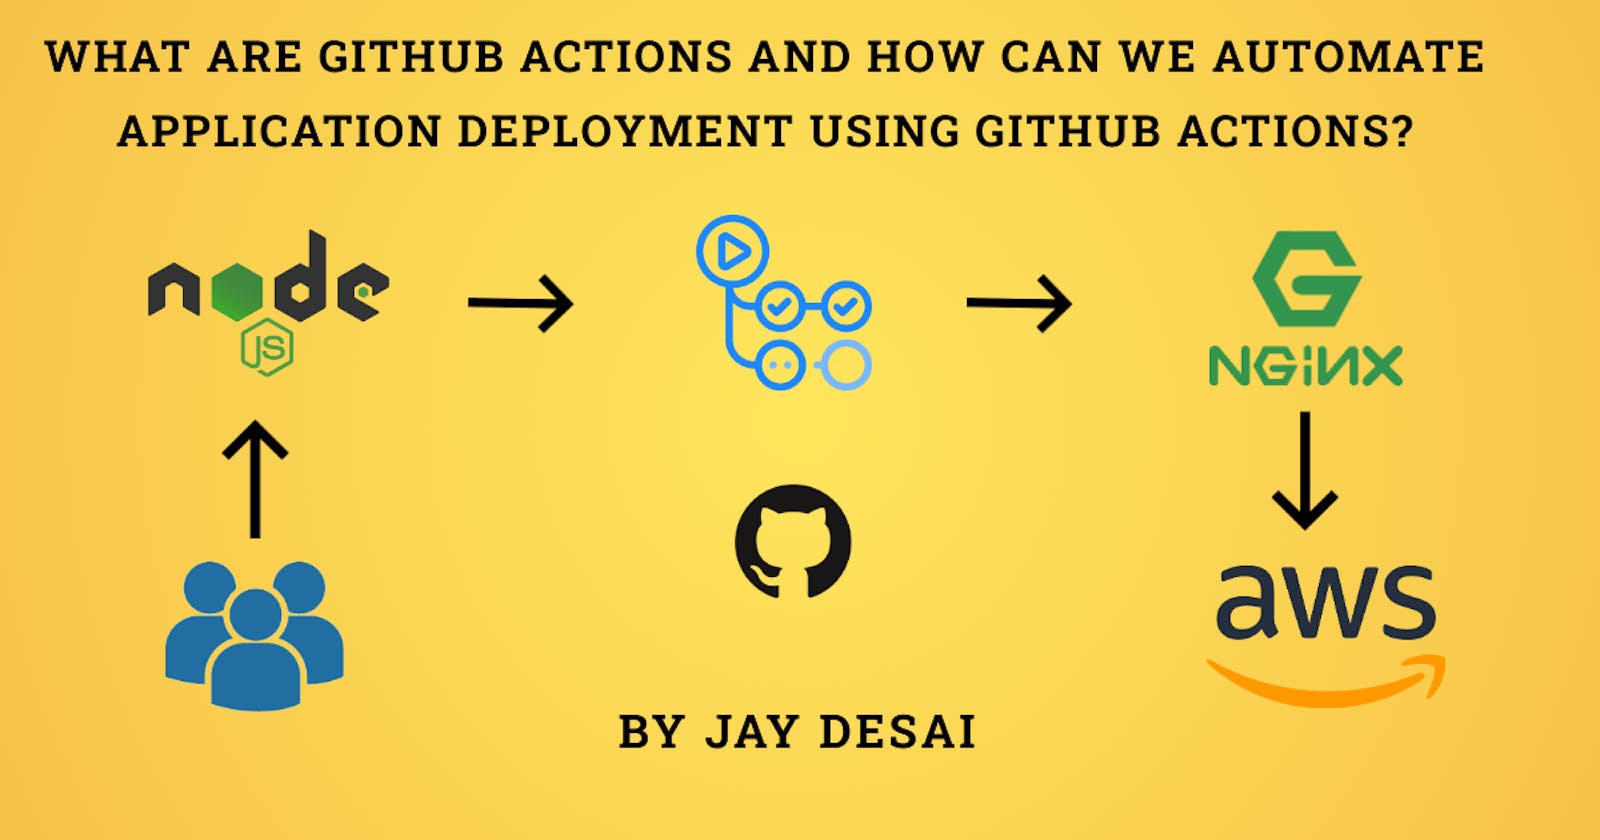 What are GitHub Actions and How can we automate application deployments using GitHub Actions?